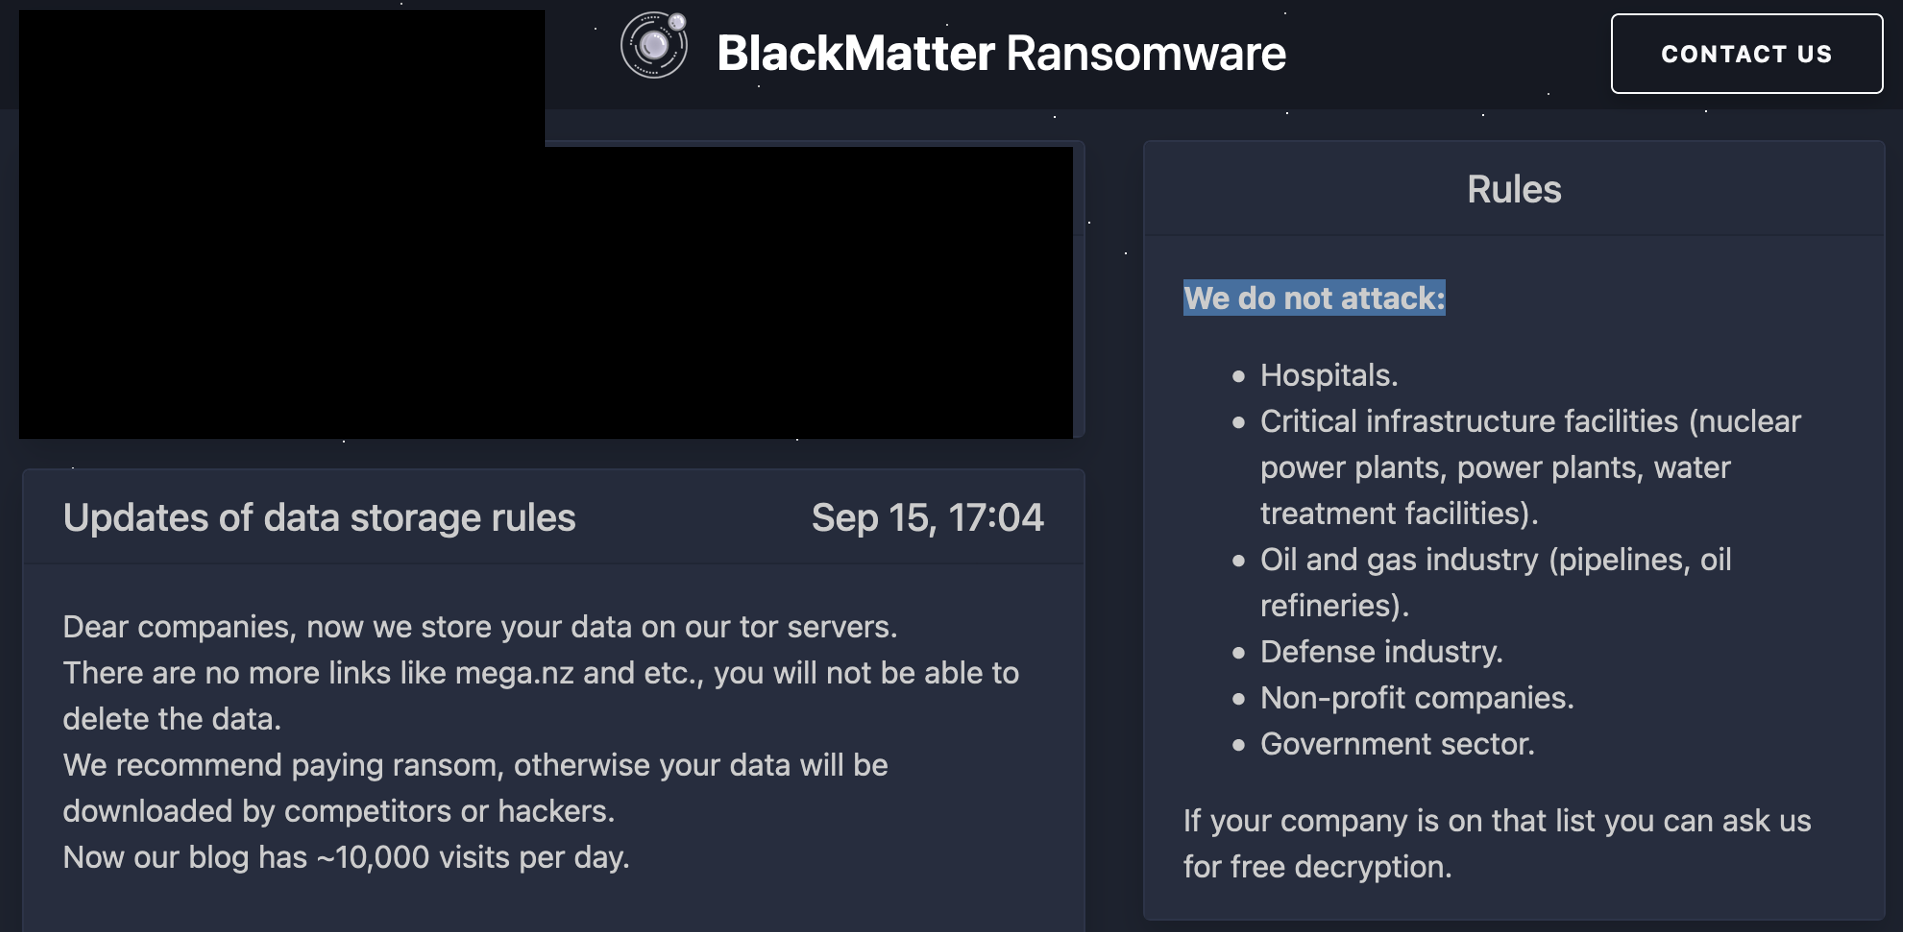 BlackMatter claims it doesn't attack critical infrastructure.